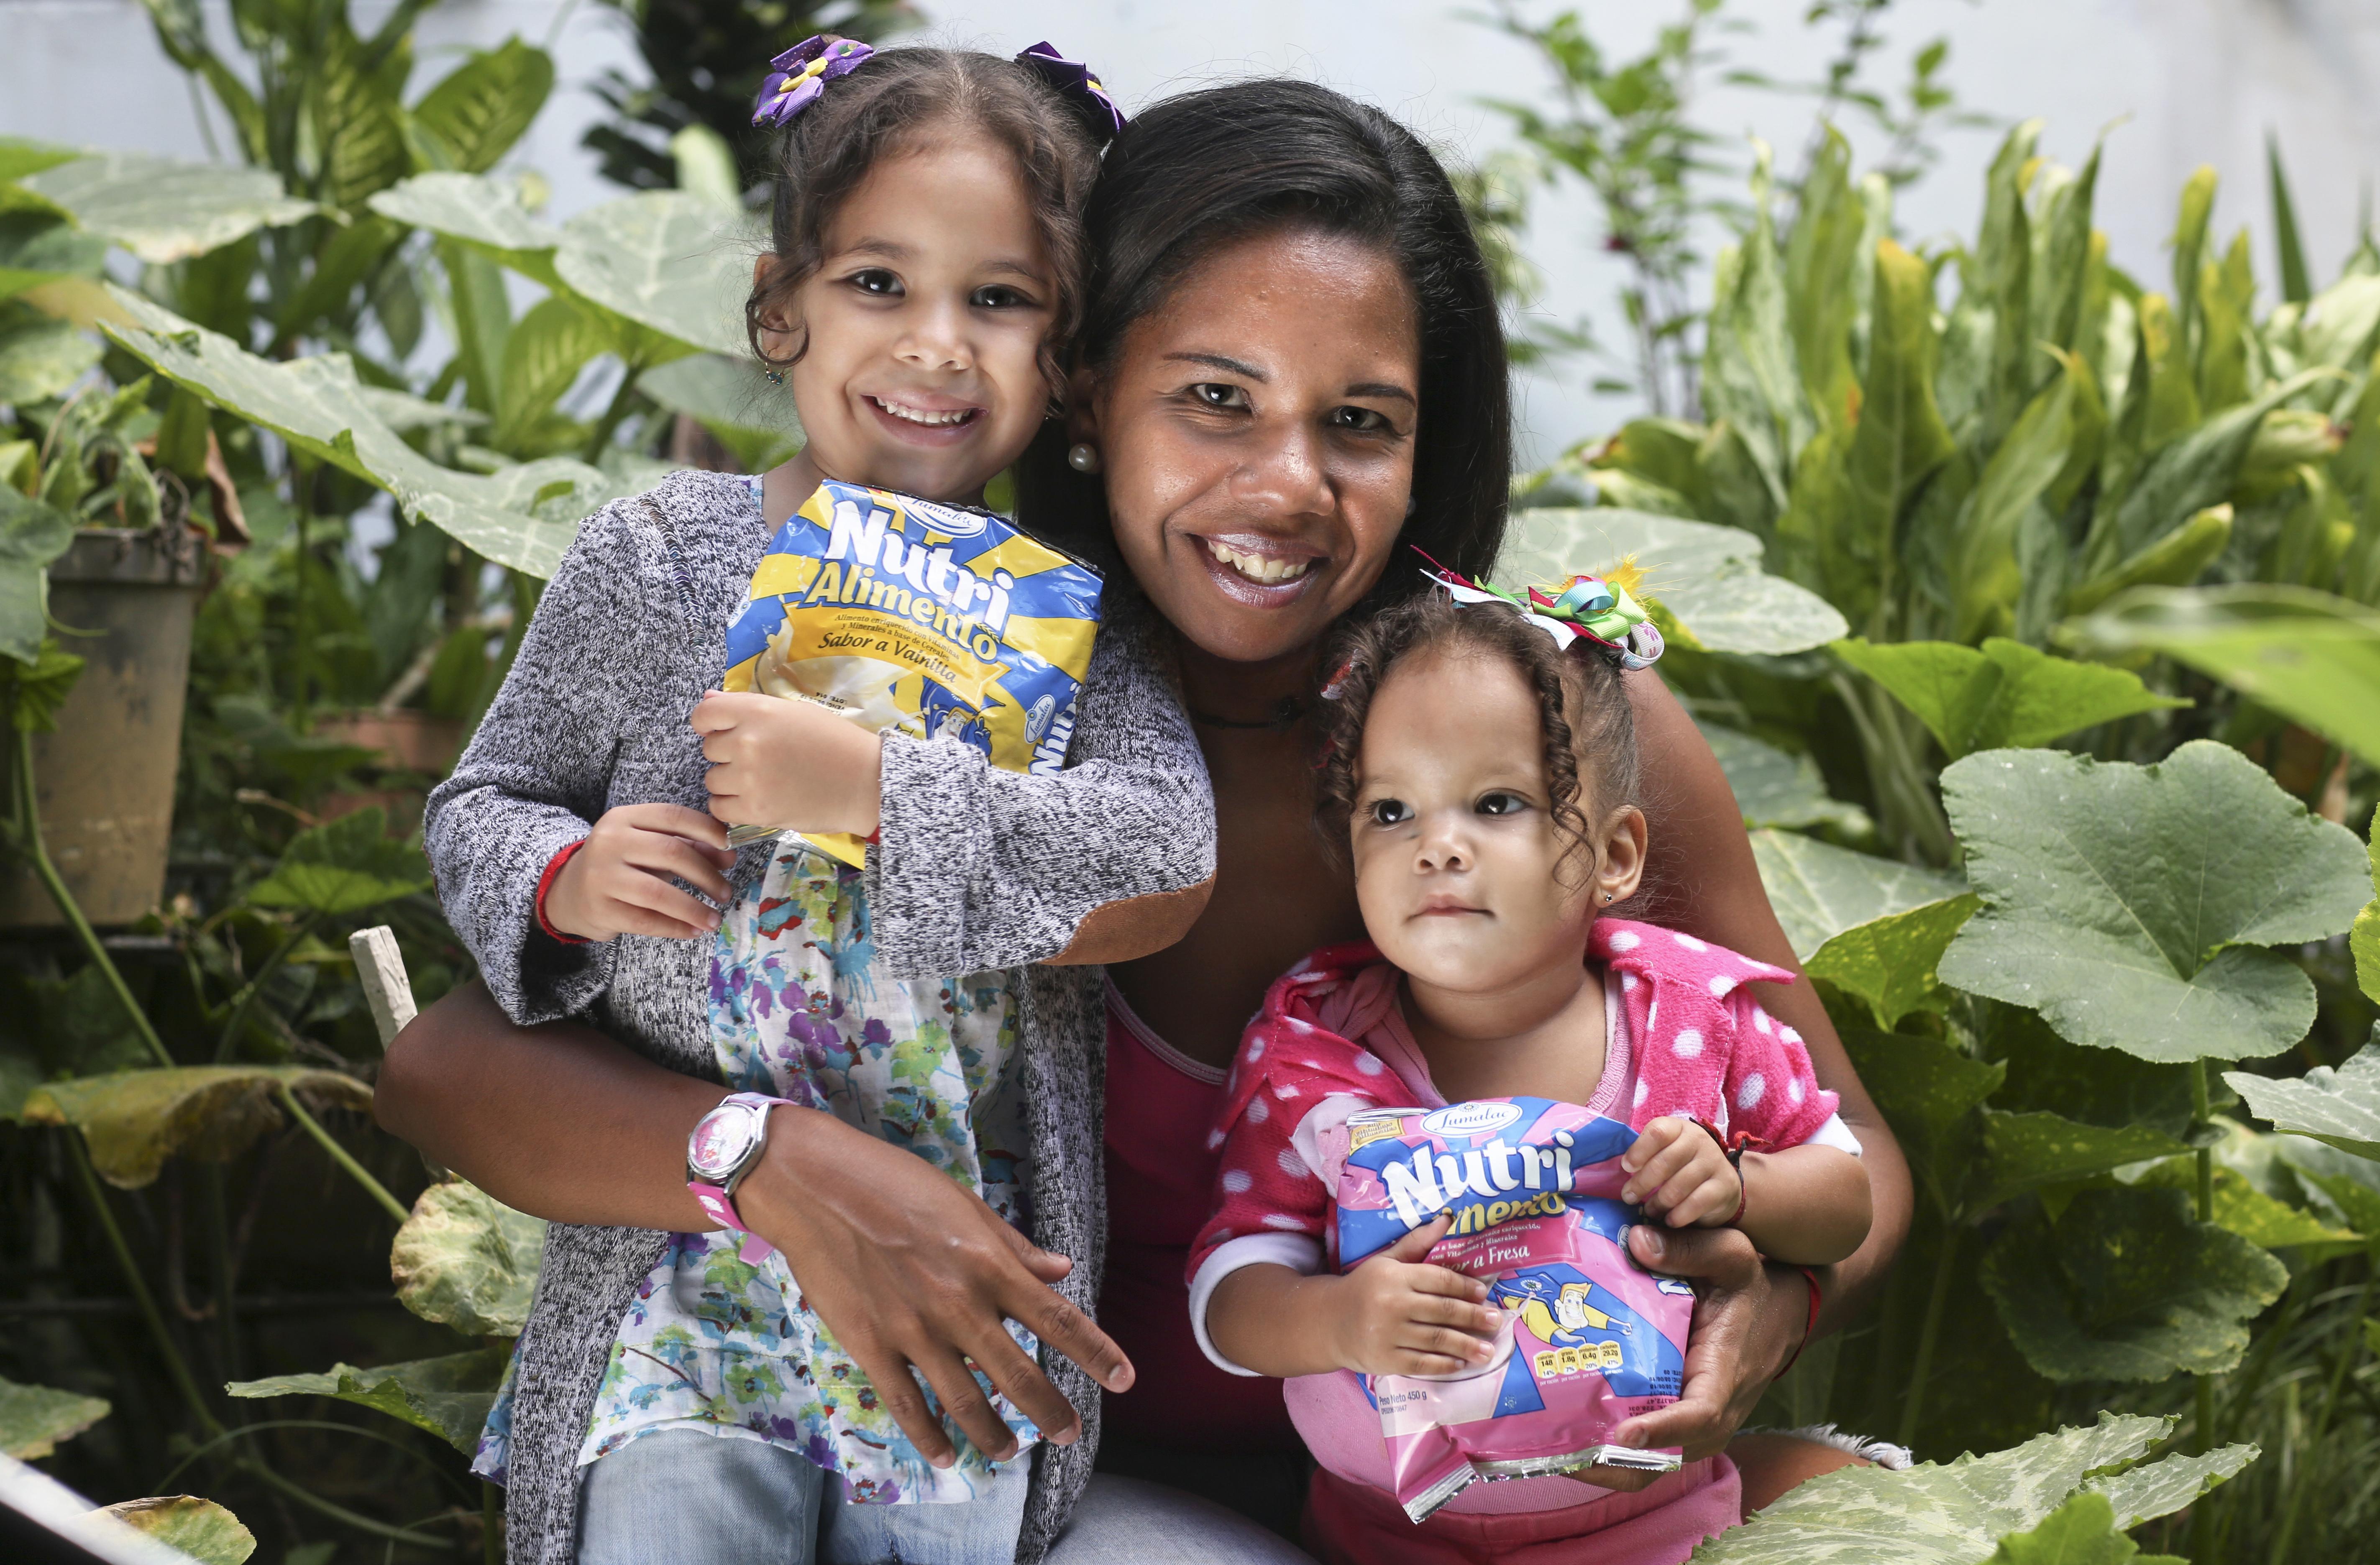 Milena Sosa, 34, with her daughters Barbara, 4, and Estefany 22 months, with their nutritional supplements given to them by Caritas Venezuela volunteers.